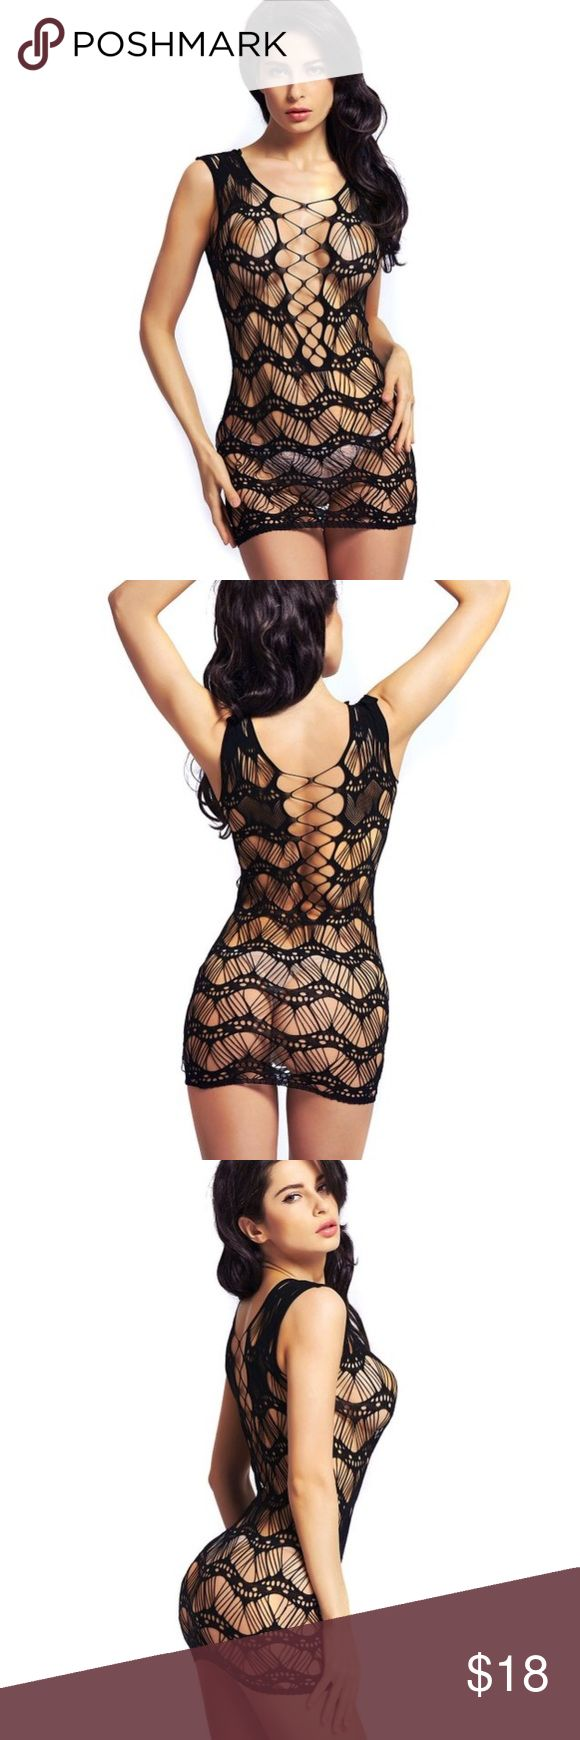 Black fishnet type dress lingerie Super hot lingerie in fishnet. One size. Mini dress style. Intimates & Sleepwear Chemises & Slips